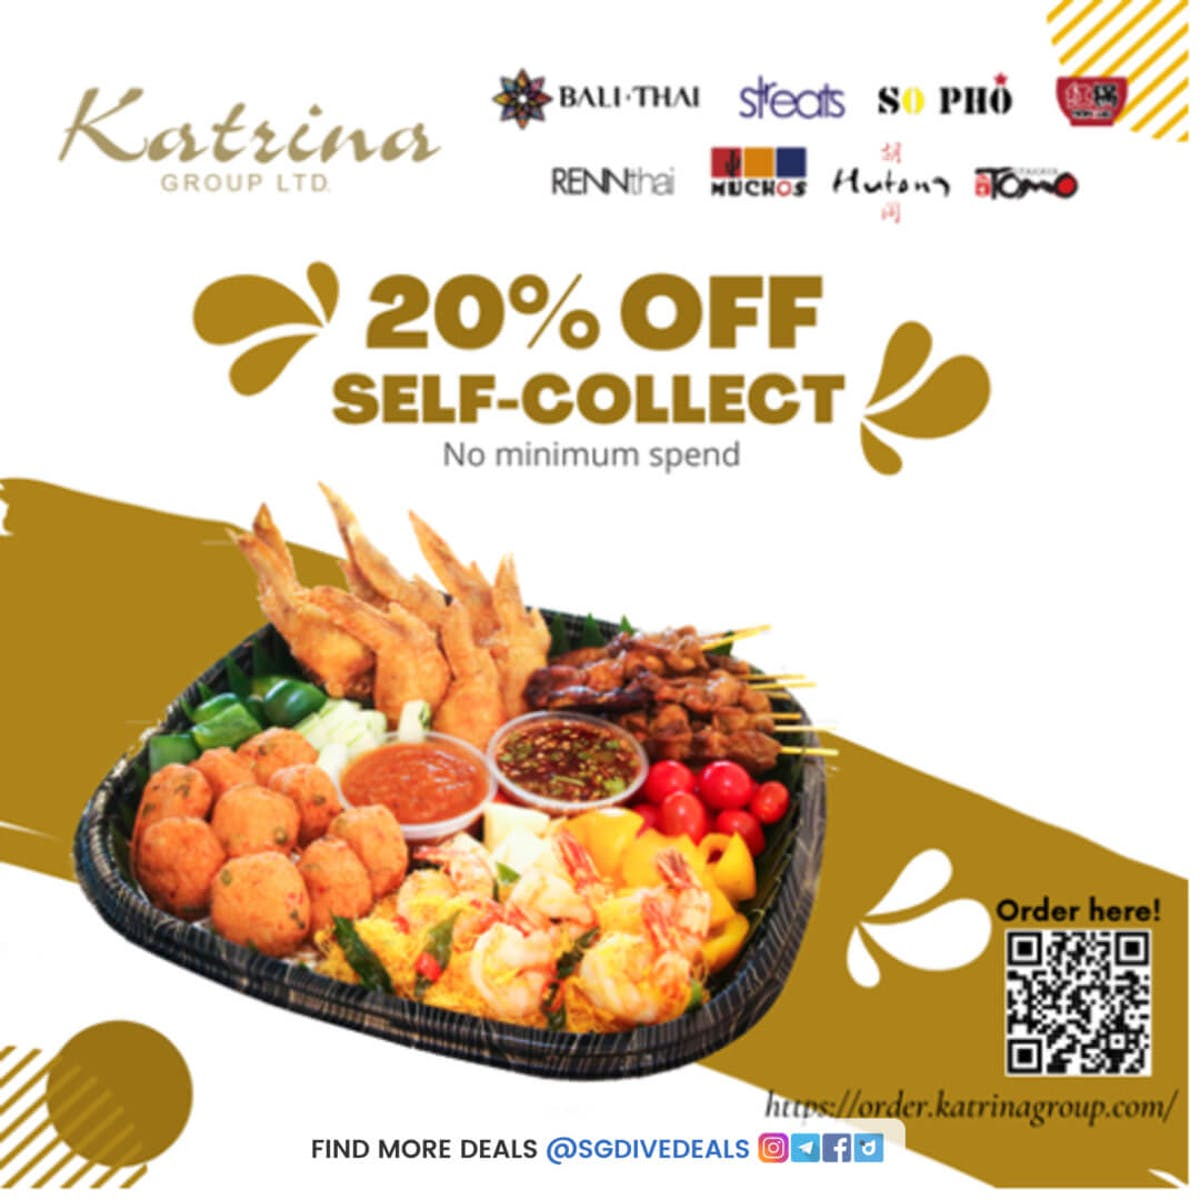 20% off self-collect orders takeaway at So Pho